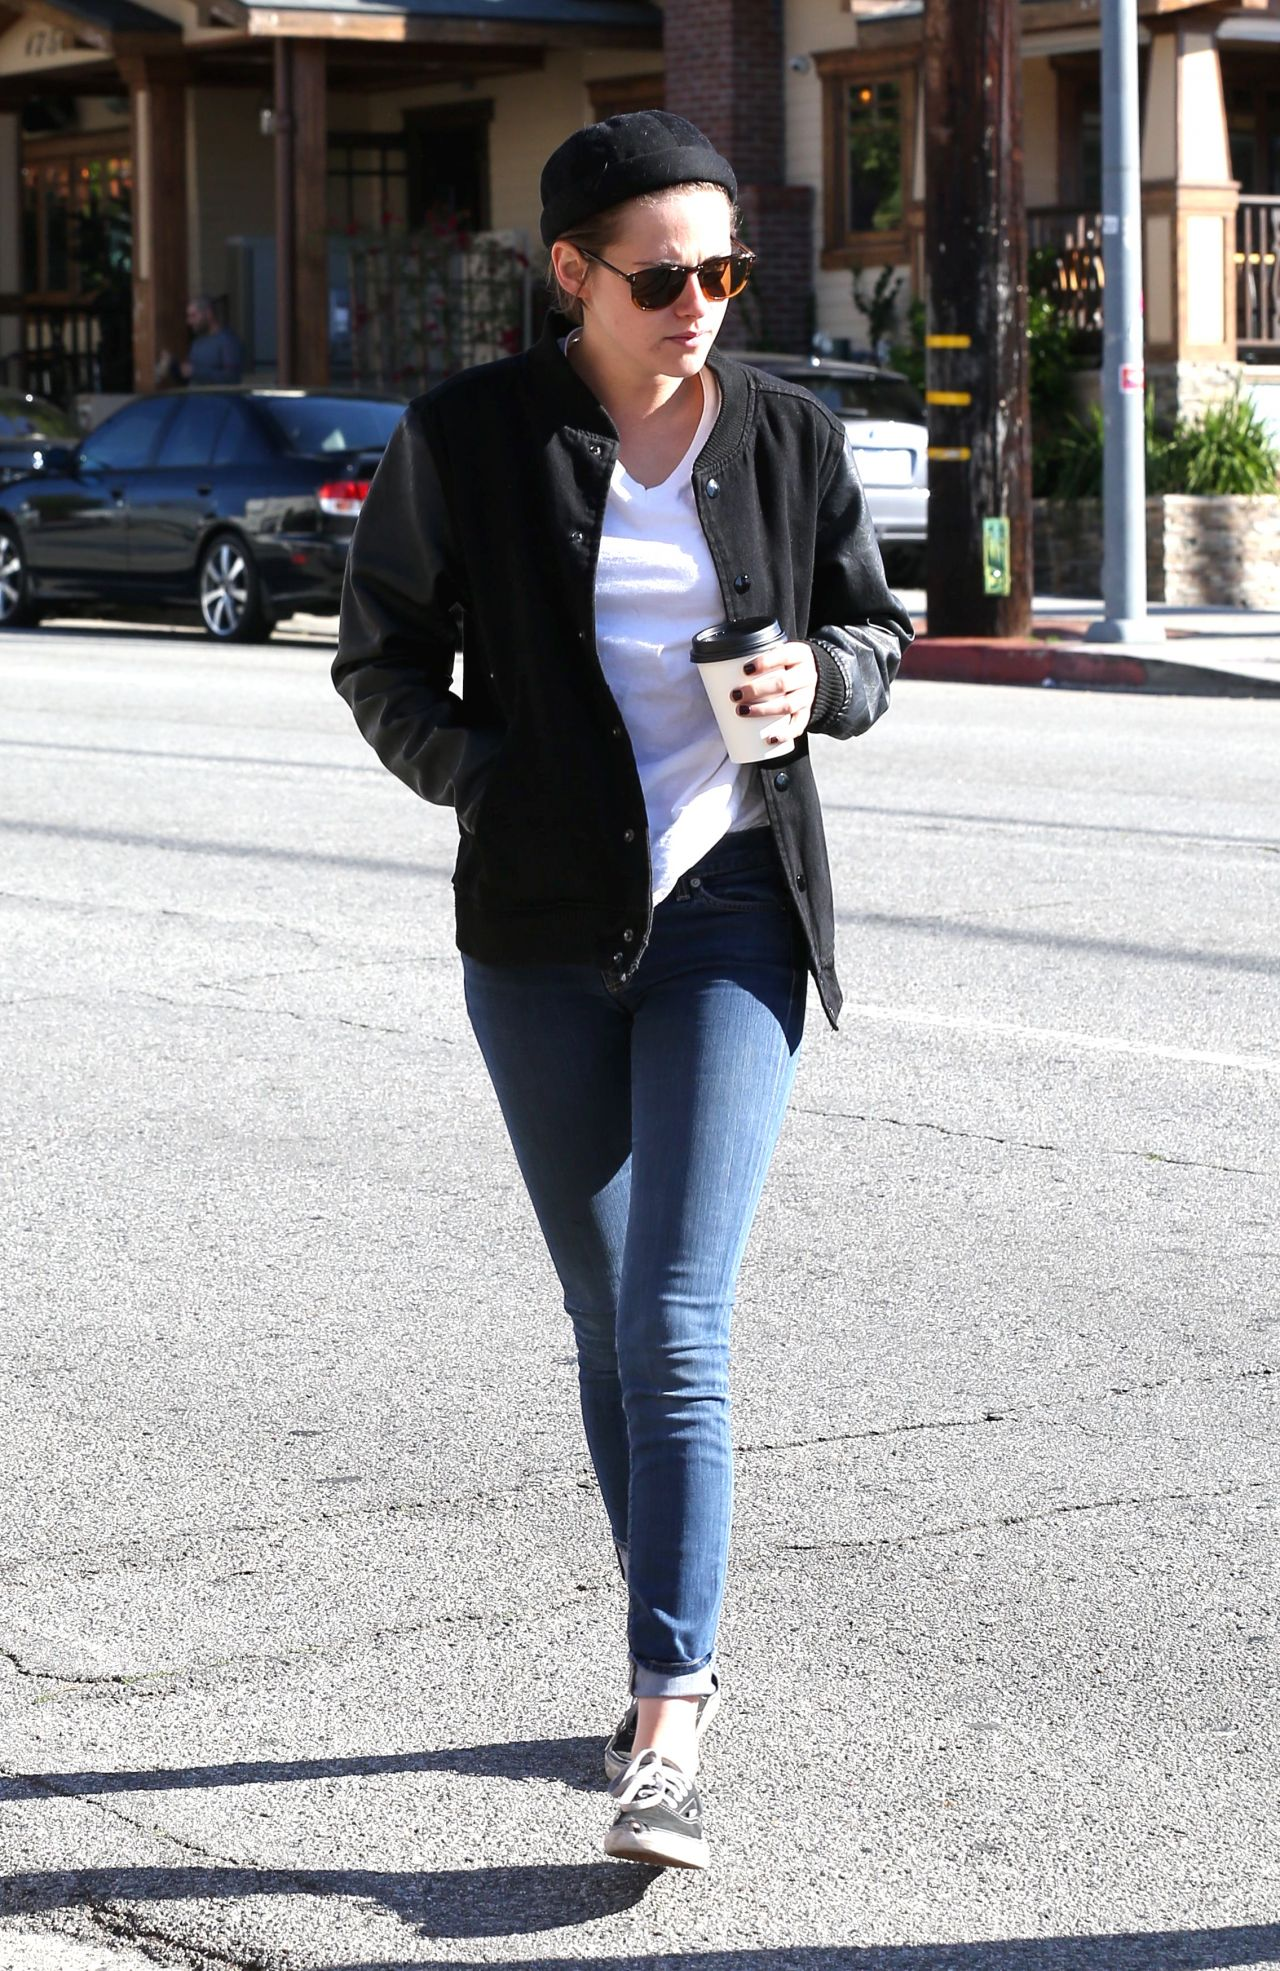 Kristen Stewart in Jeans - Out for Coffee With Alicia Cargile in Los Angeles, Feb. 2015